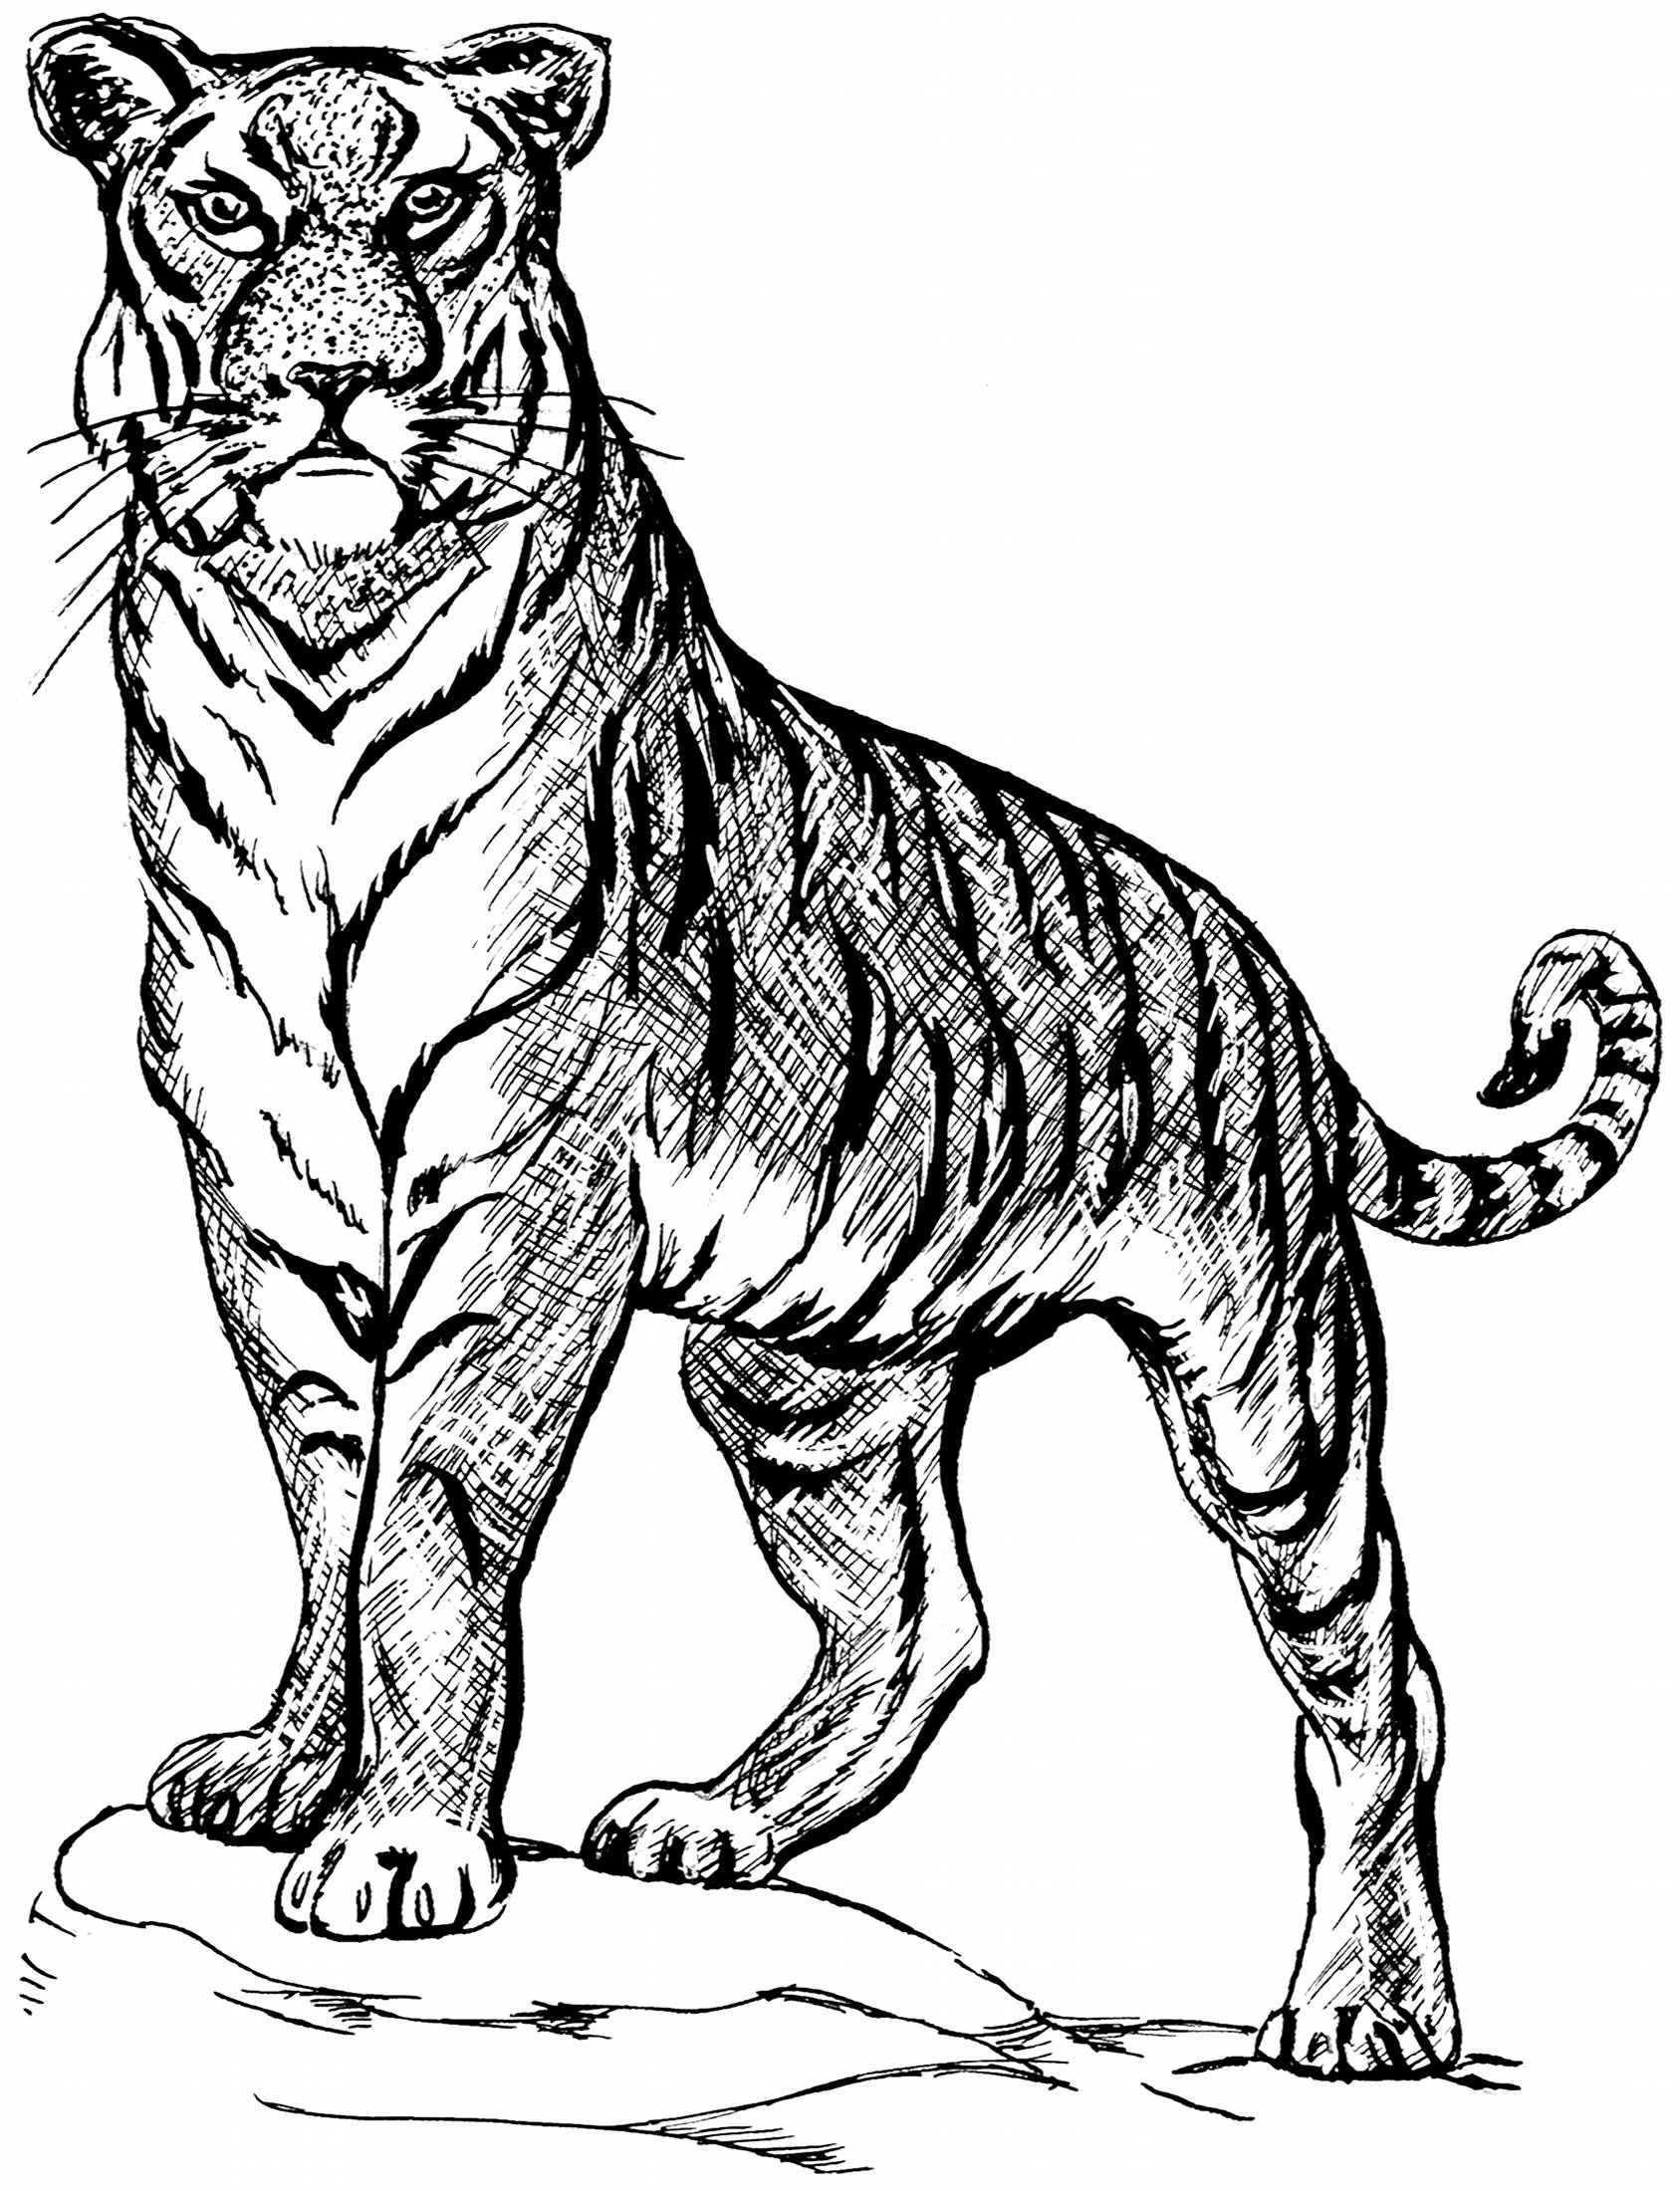 Line Art Tiger : Tiger line drawings for coloring